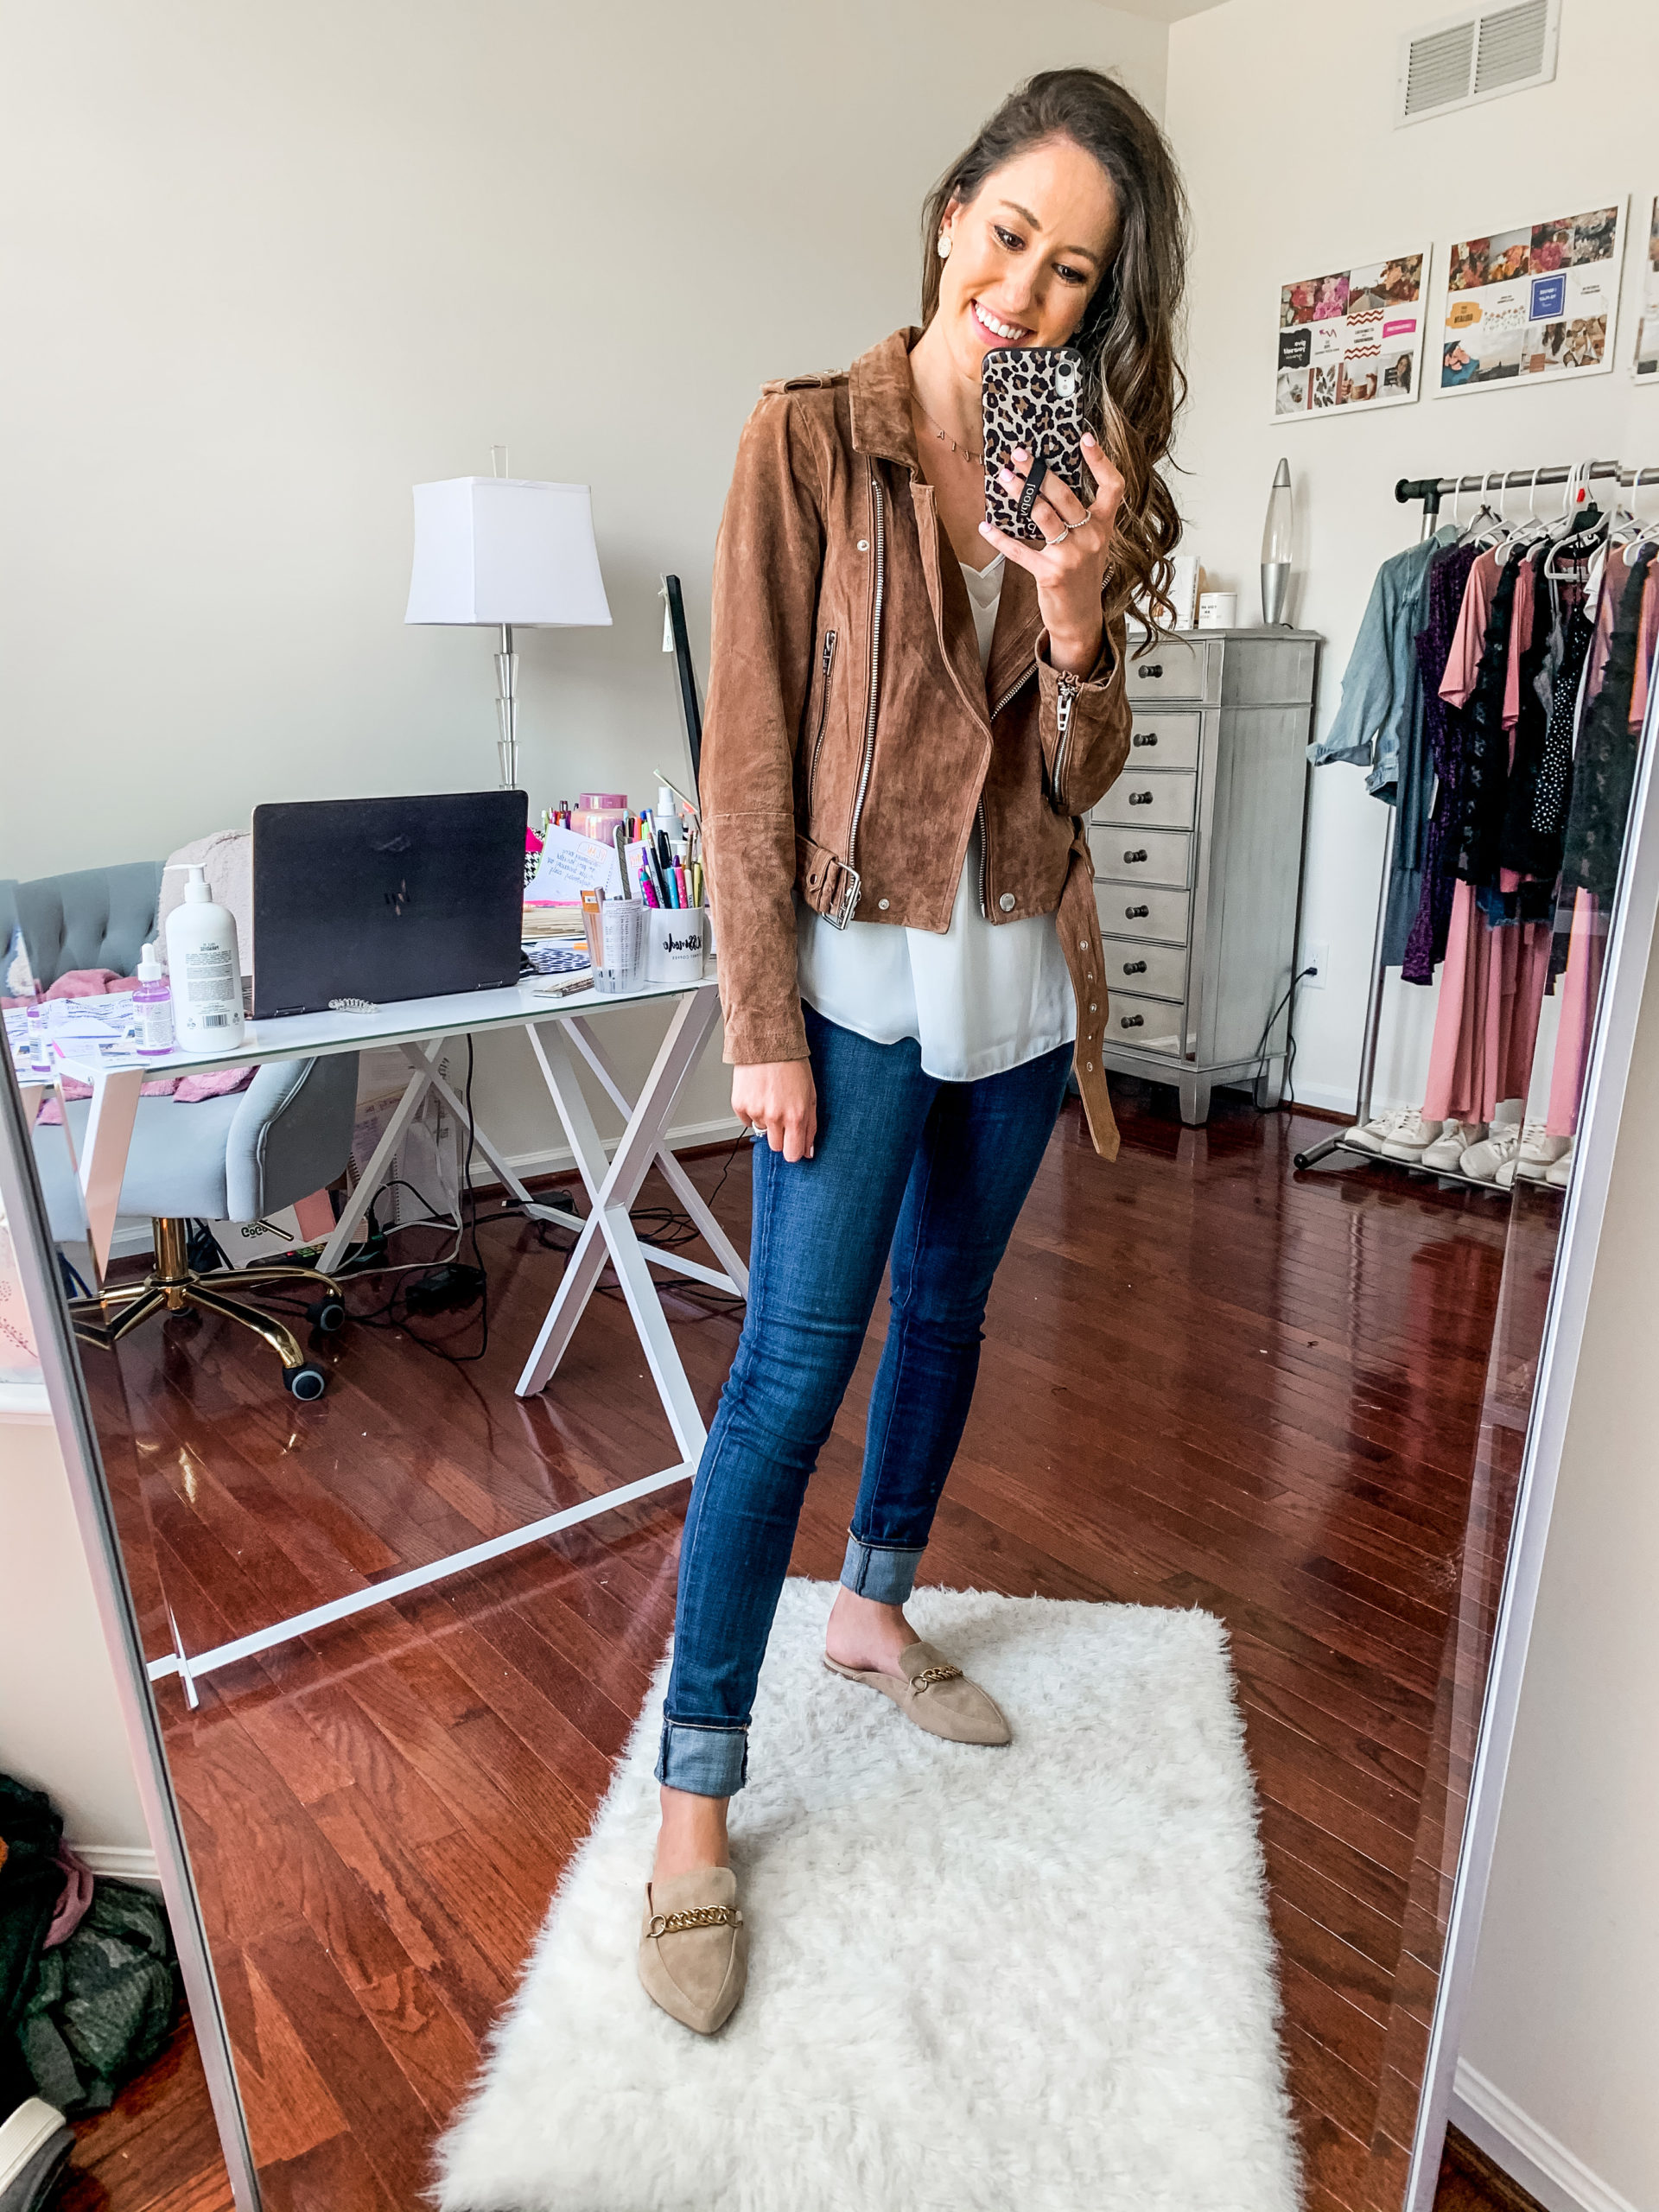 blankNYC suede jacket - NORDSTROM ANNIVERSARY SALE - Try-on Haul with Hits AND MISSES on Coming Up Roses